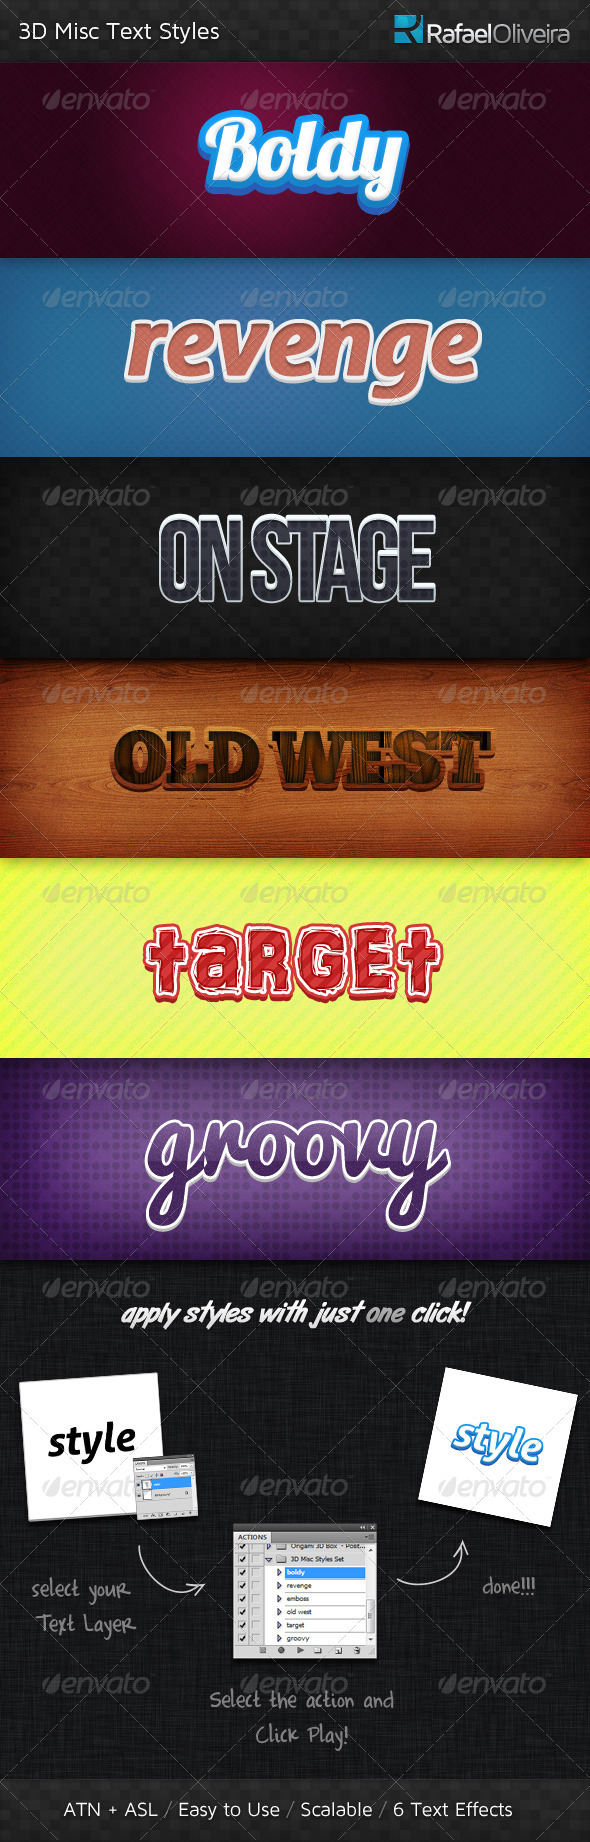 GraphicRiver 3D Misc Text Styles 403744